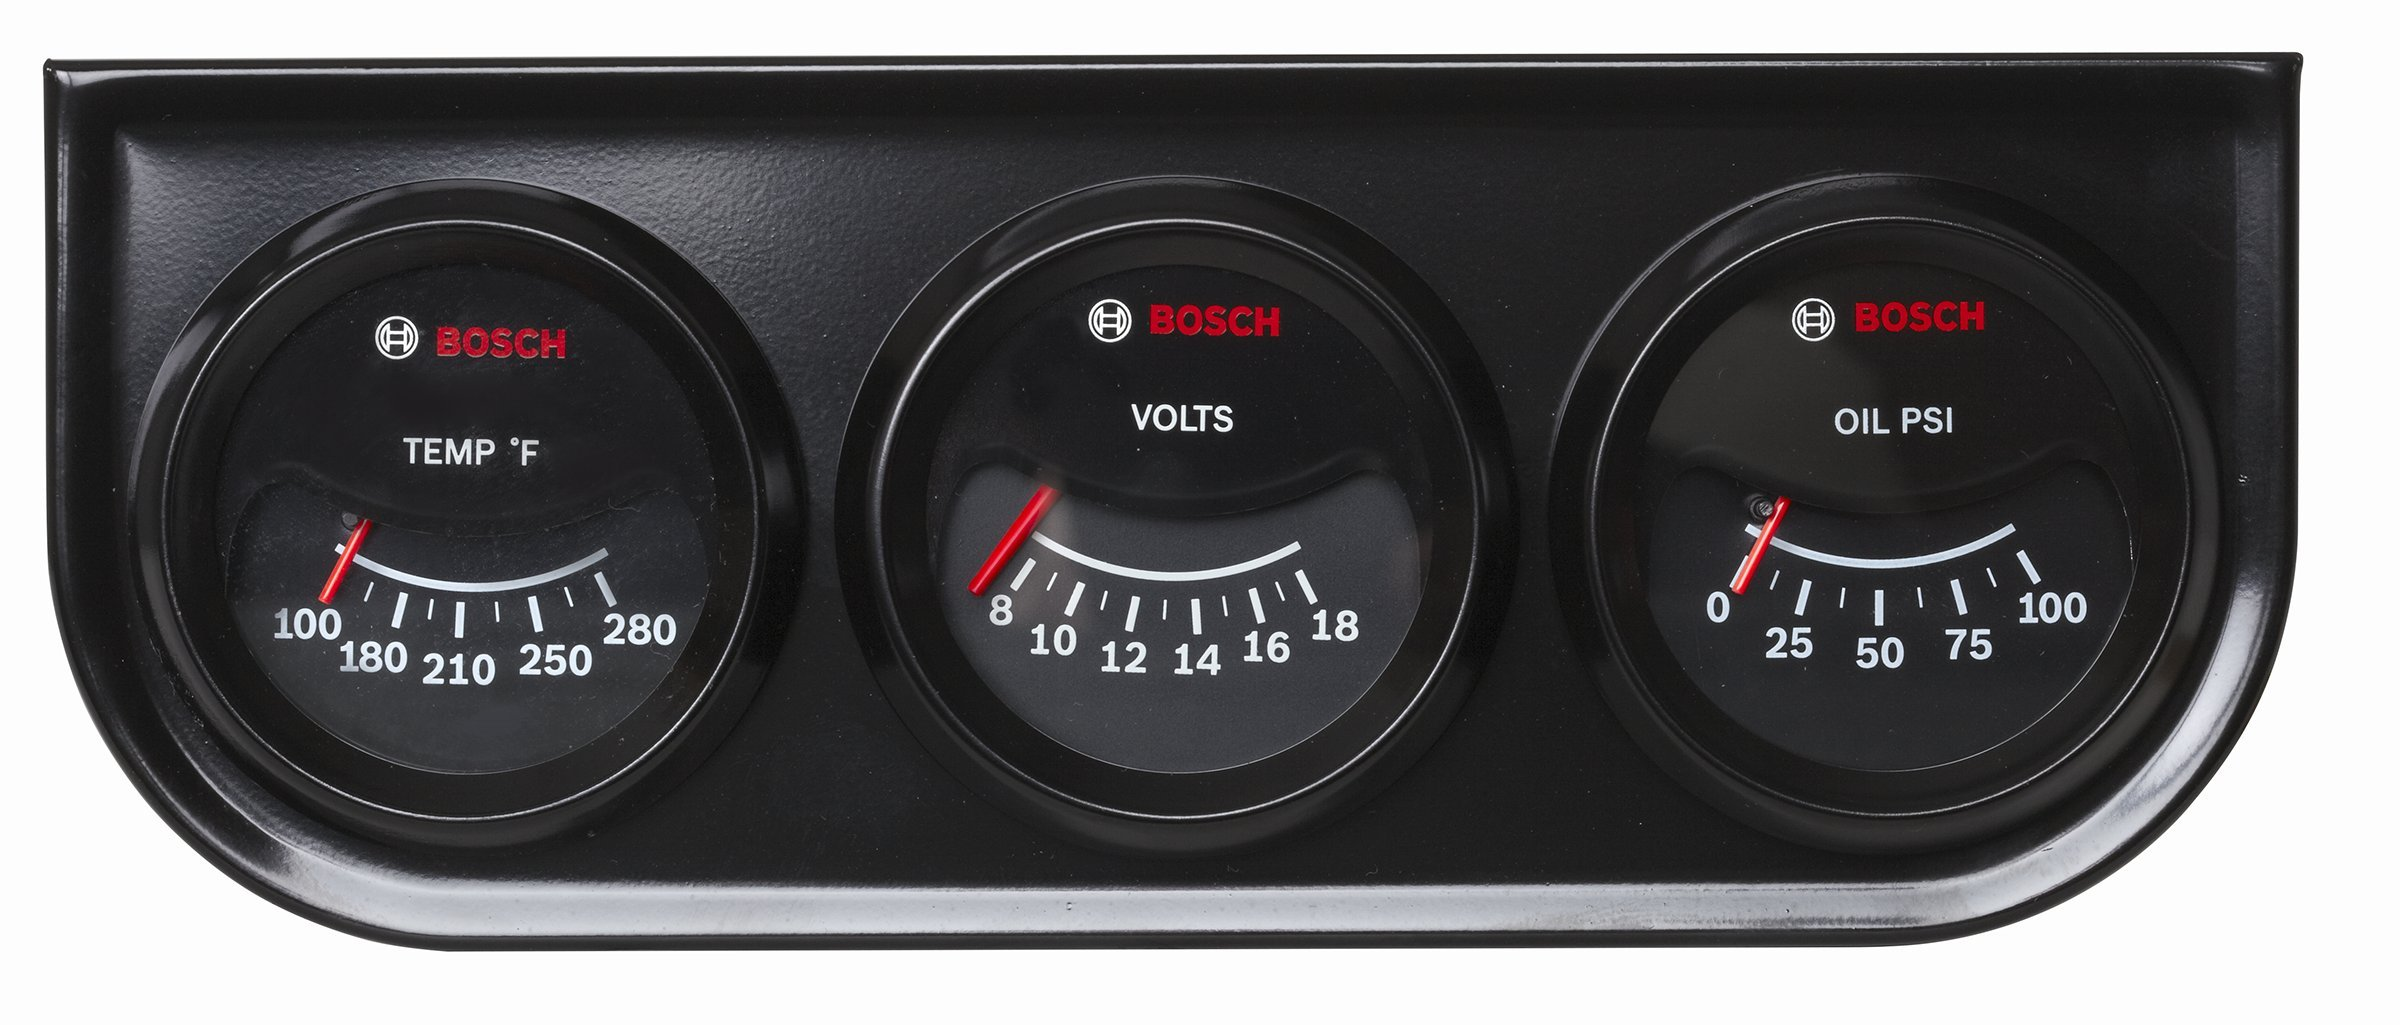 Bosch SP0F000024 Custom Line Triple Gauge by Bosch Automotive